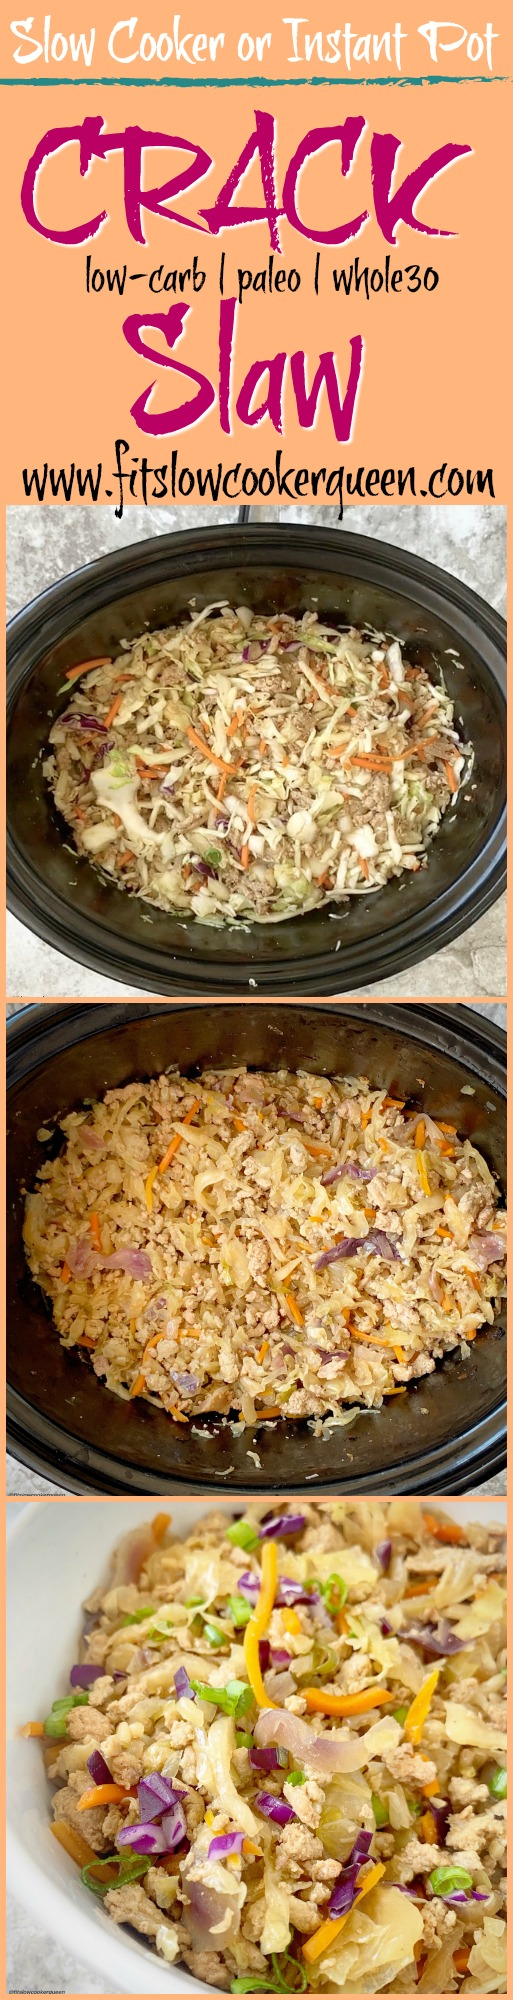 another pinterest pin for pinterest pin for Slow Cooker_Instant Pot 'Crack' Slaw (Low-Carb, Paleo, Whole30)